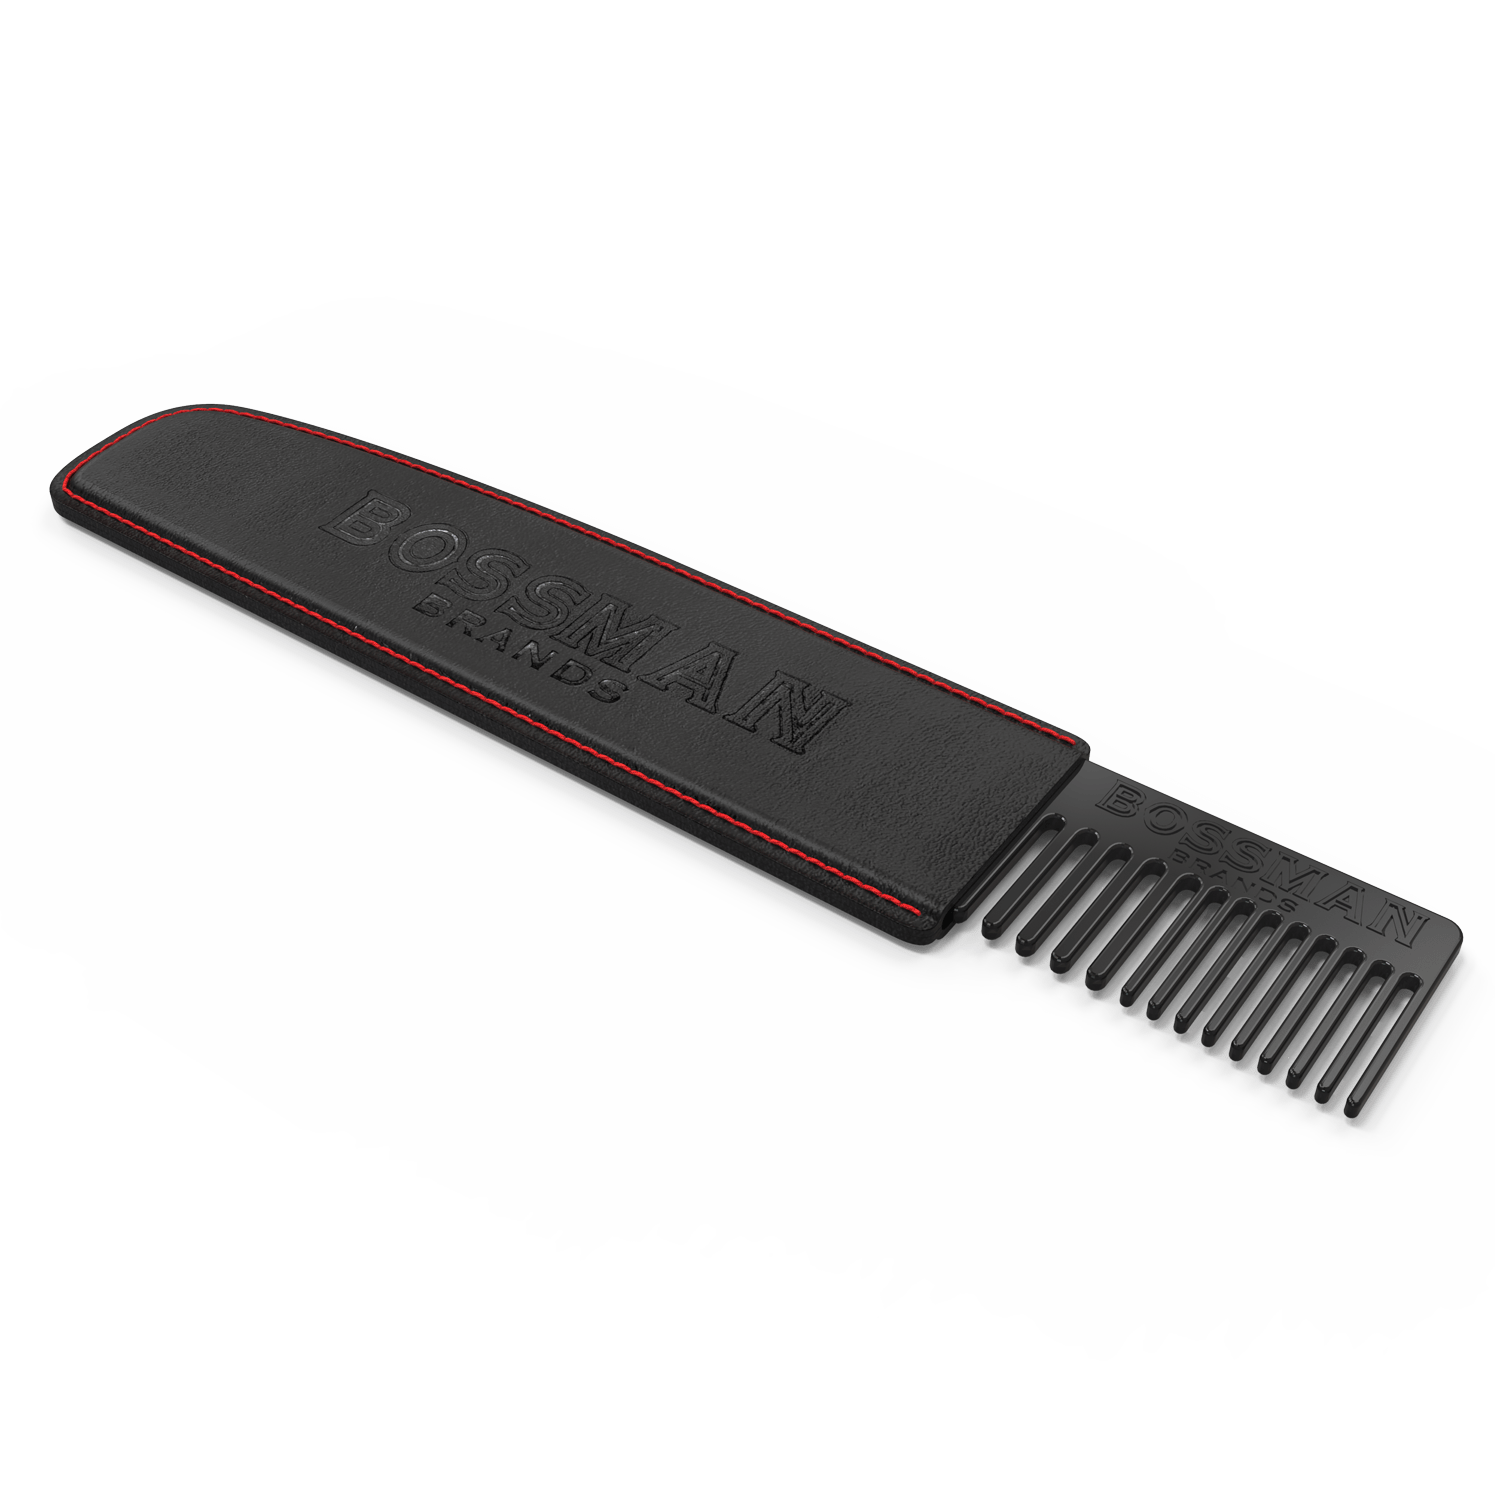 Bossman Metal Beard, Mustache & Hair Comb